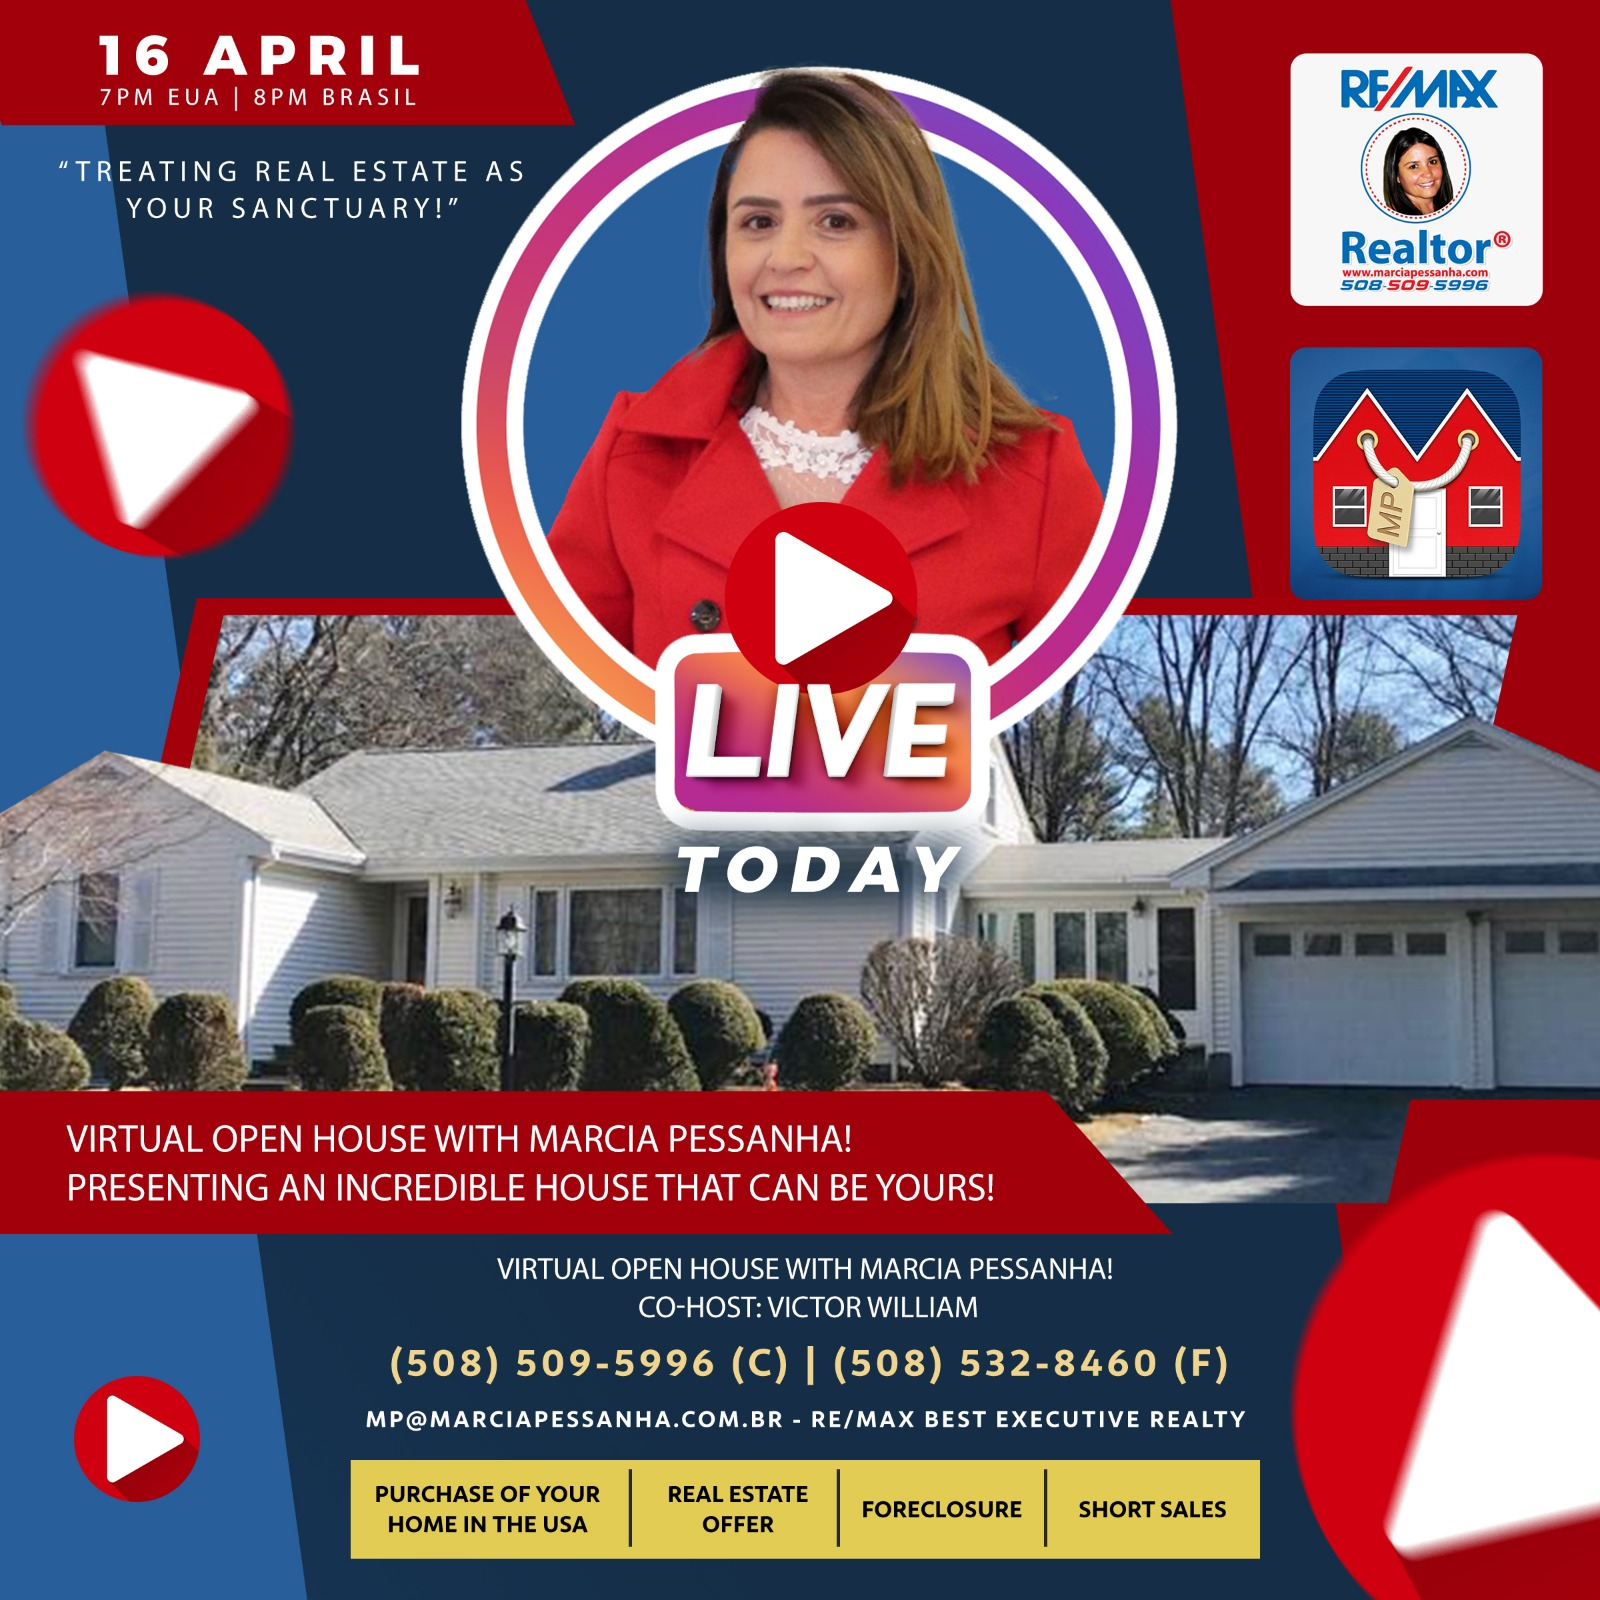 #Livestream of House for Sale in Ashland, MA